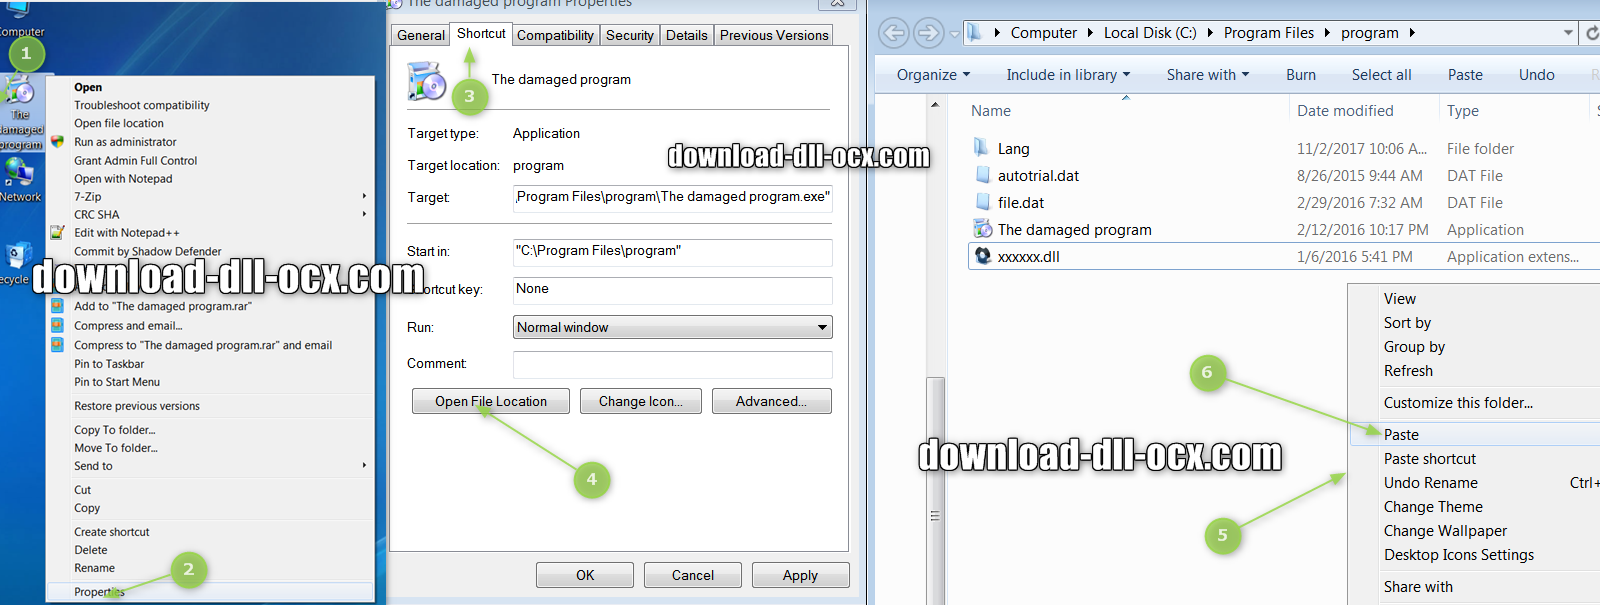 how to install primosdk.dll file? for fix missing